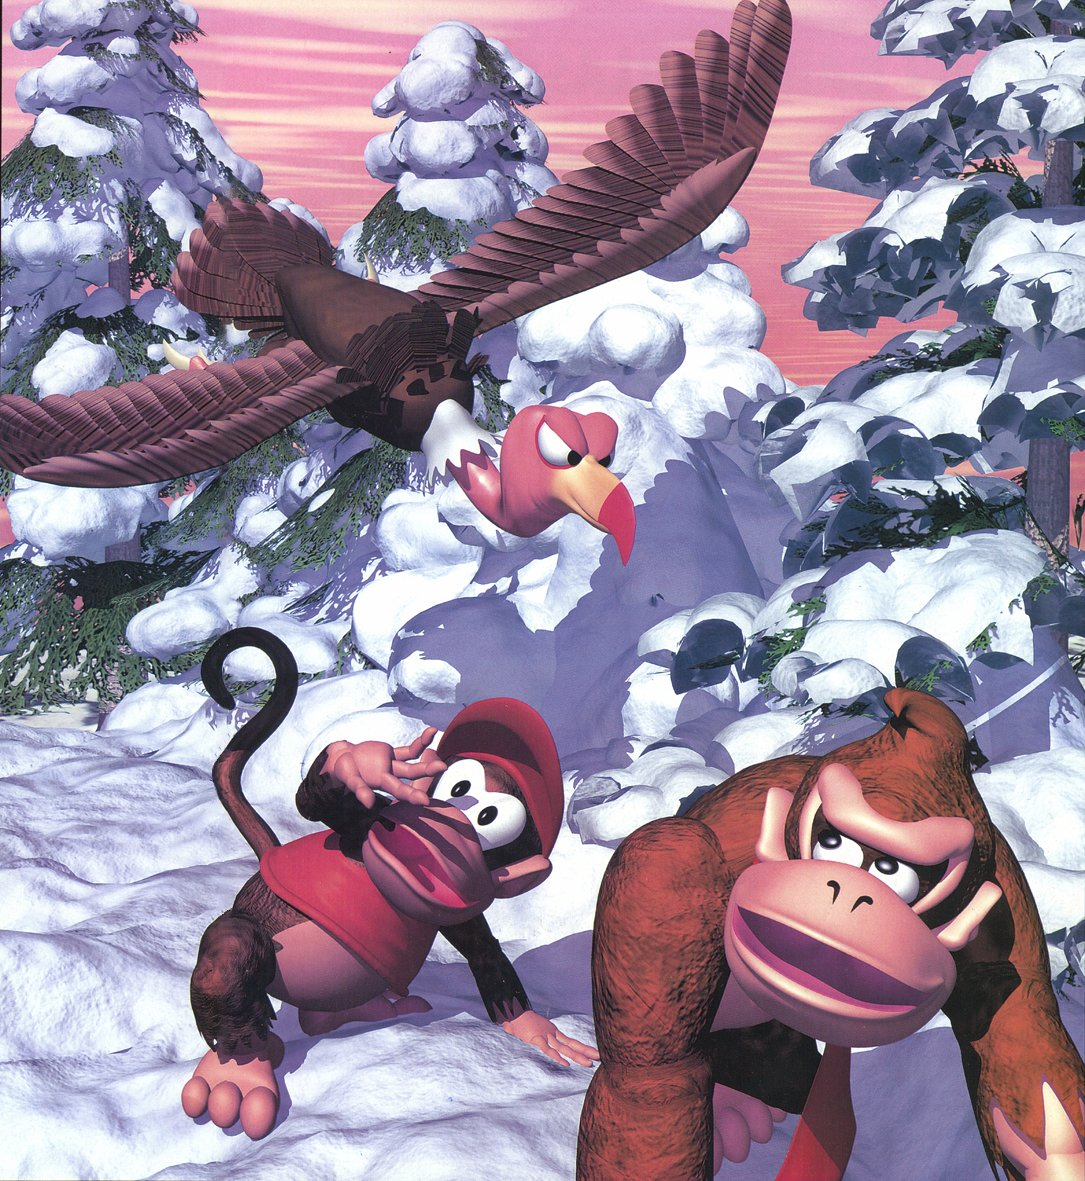 DK_and_Diddy_in_snow_area_DKC.jpg